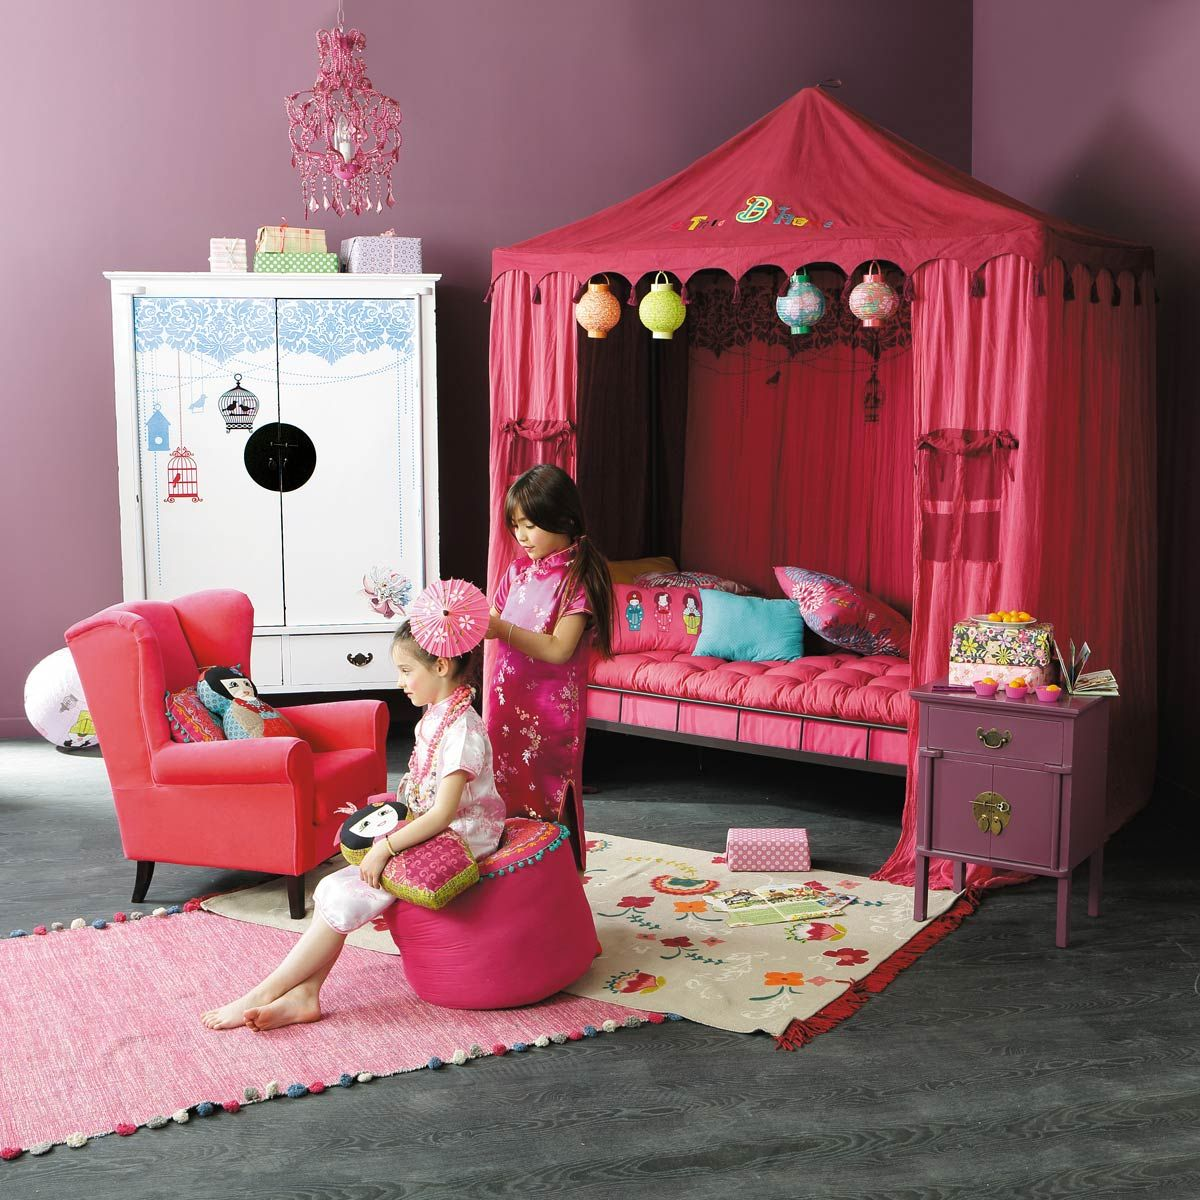 tente enfant jade d couvrir chez maison du monde ce auvent se pose sur la structure du lit. Black Bedroom Furniture Sets. Home Design Ideas